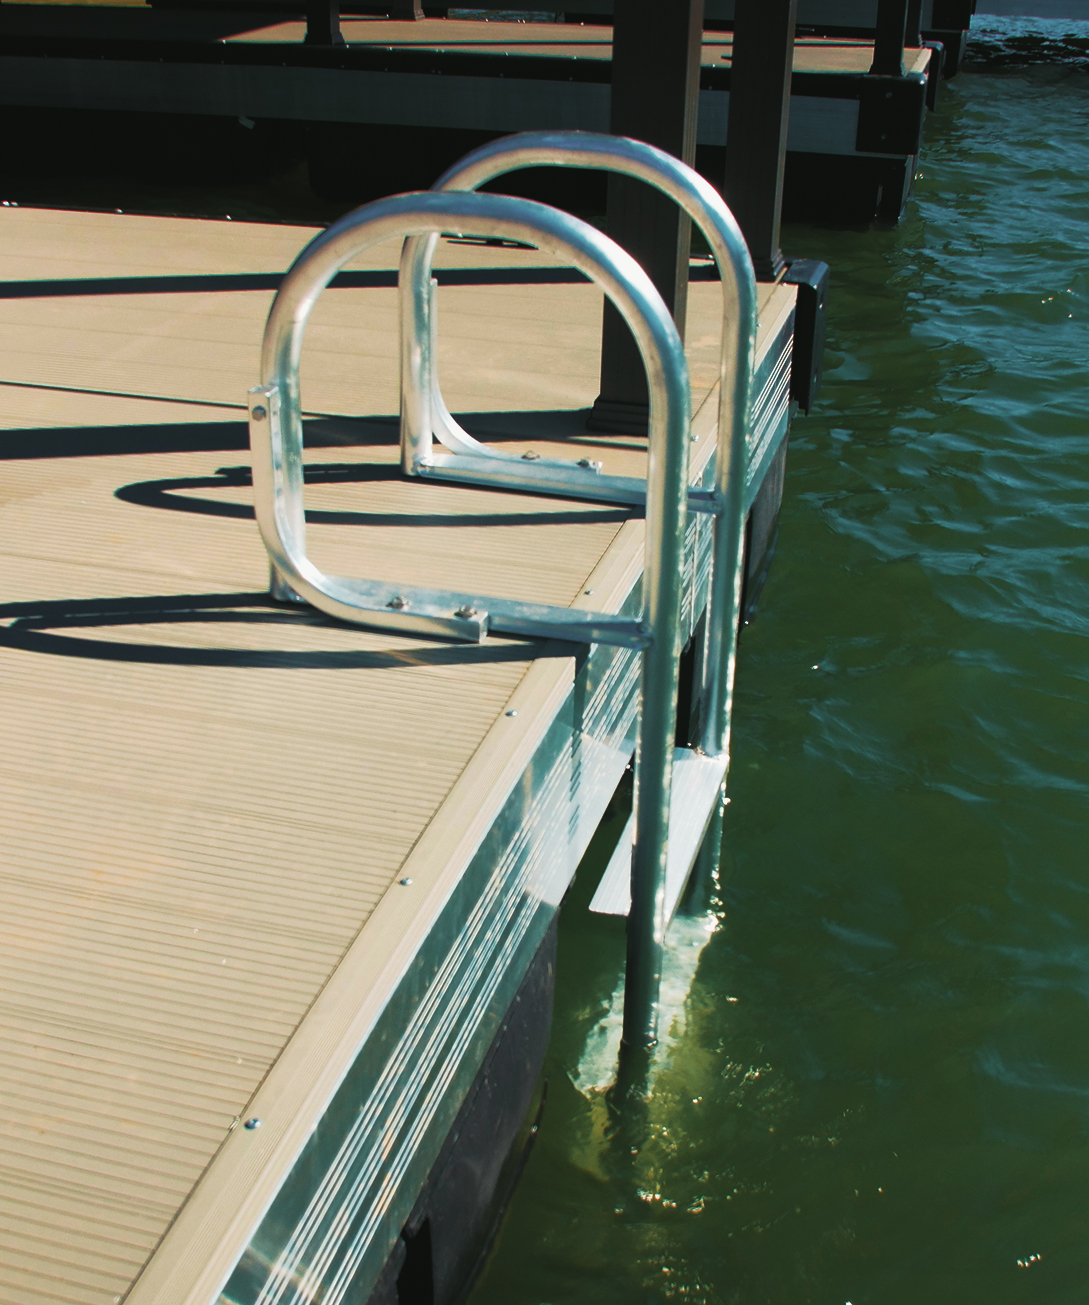 Flotation Systems, Inc. swim ladder in the water